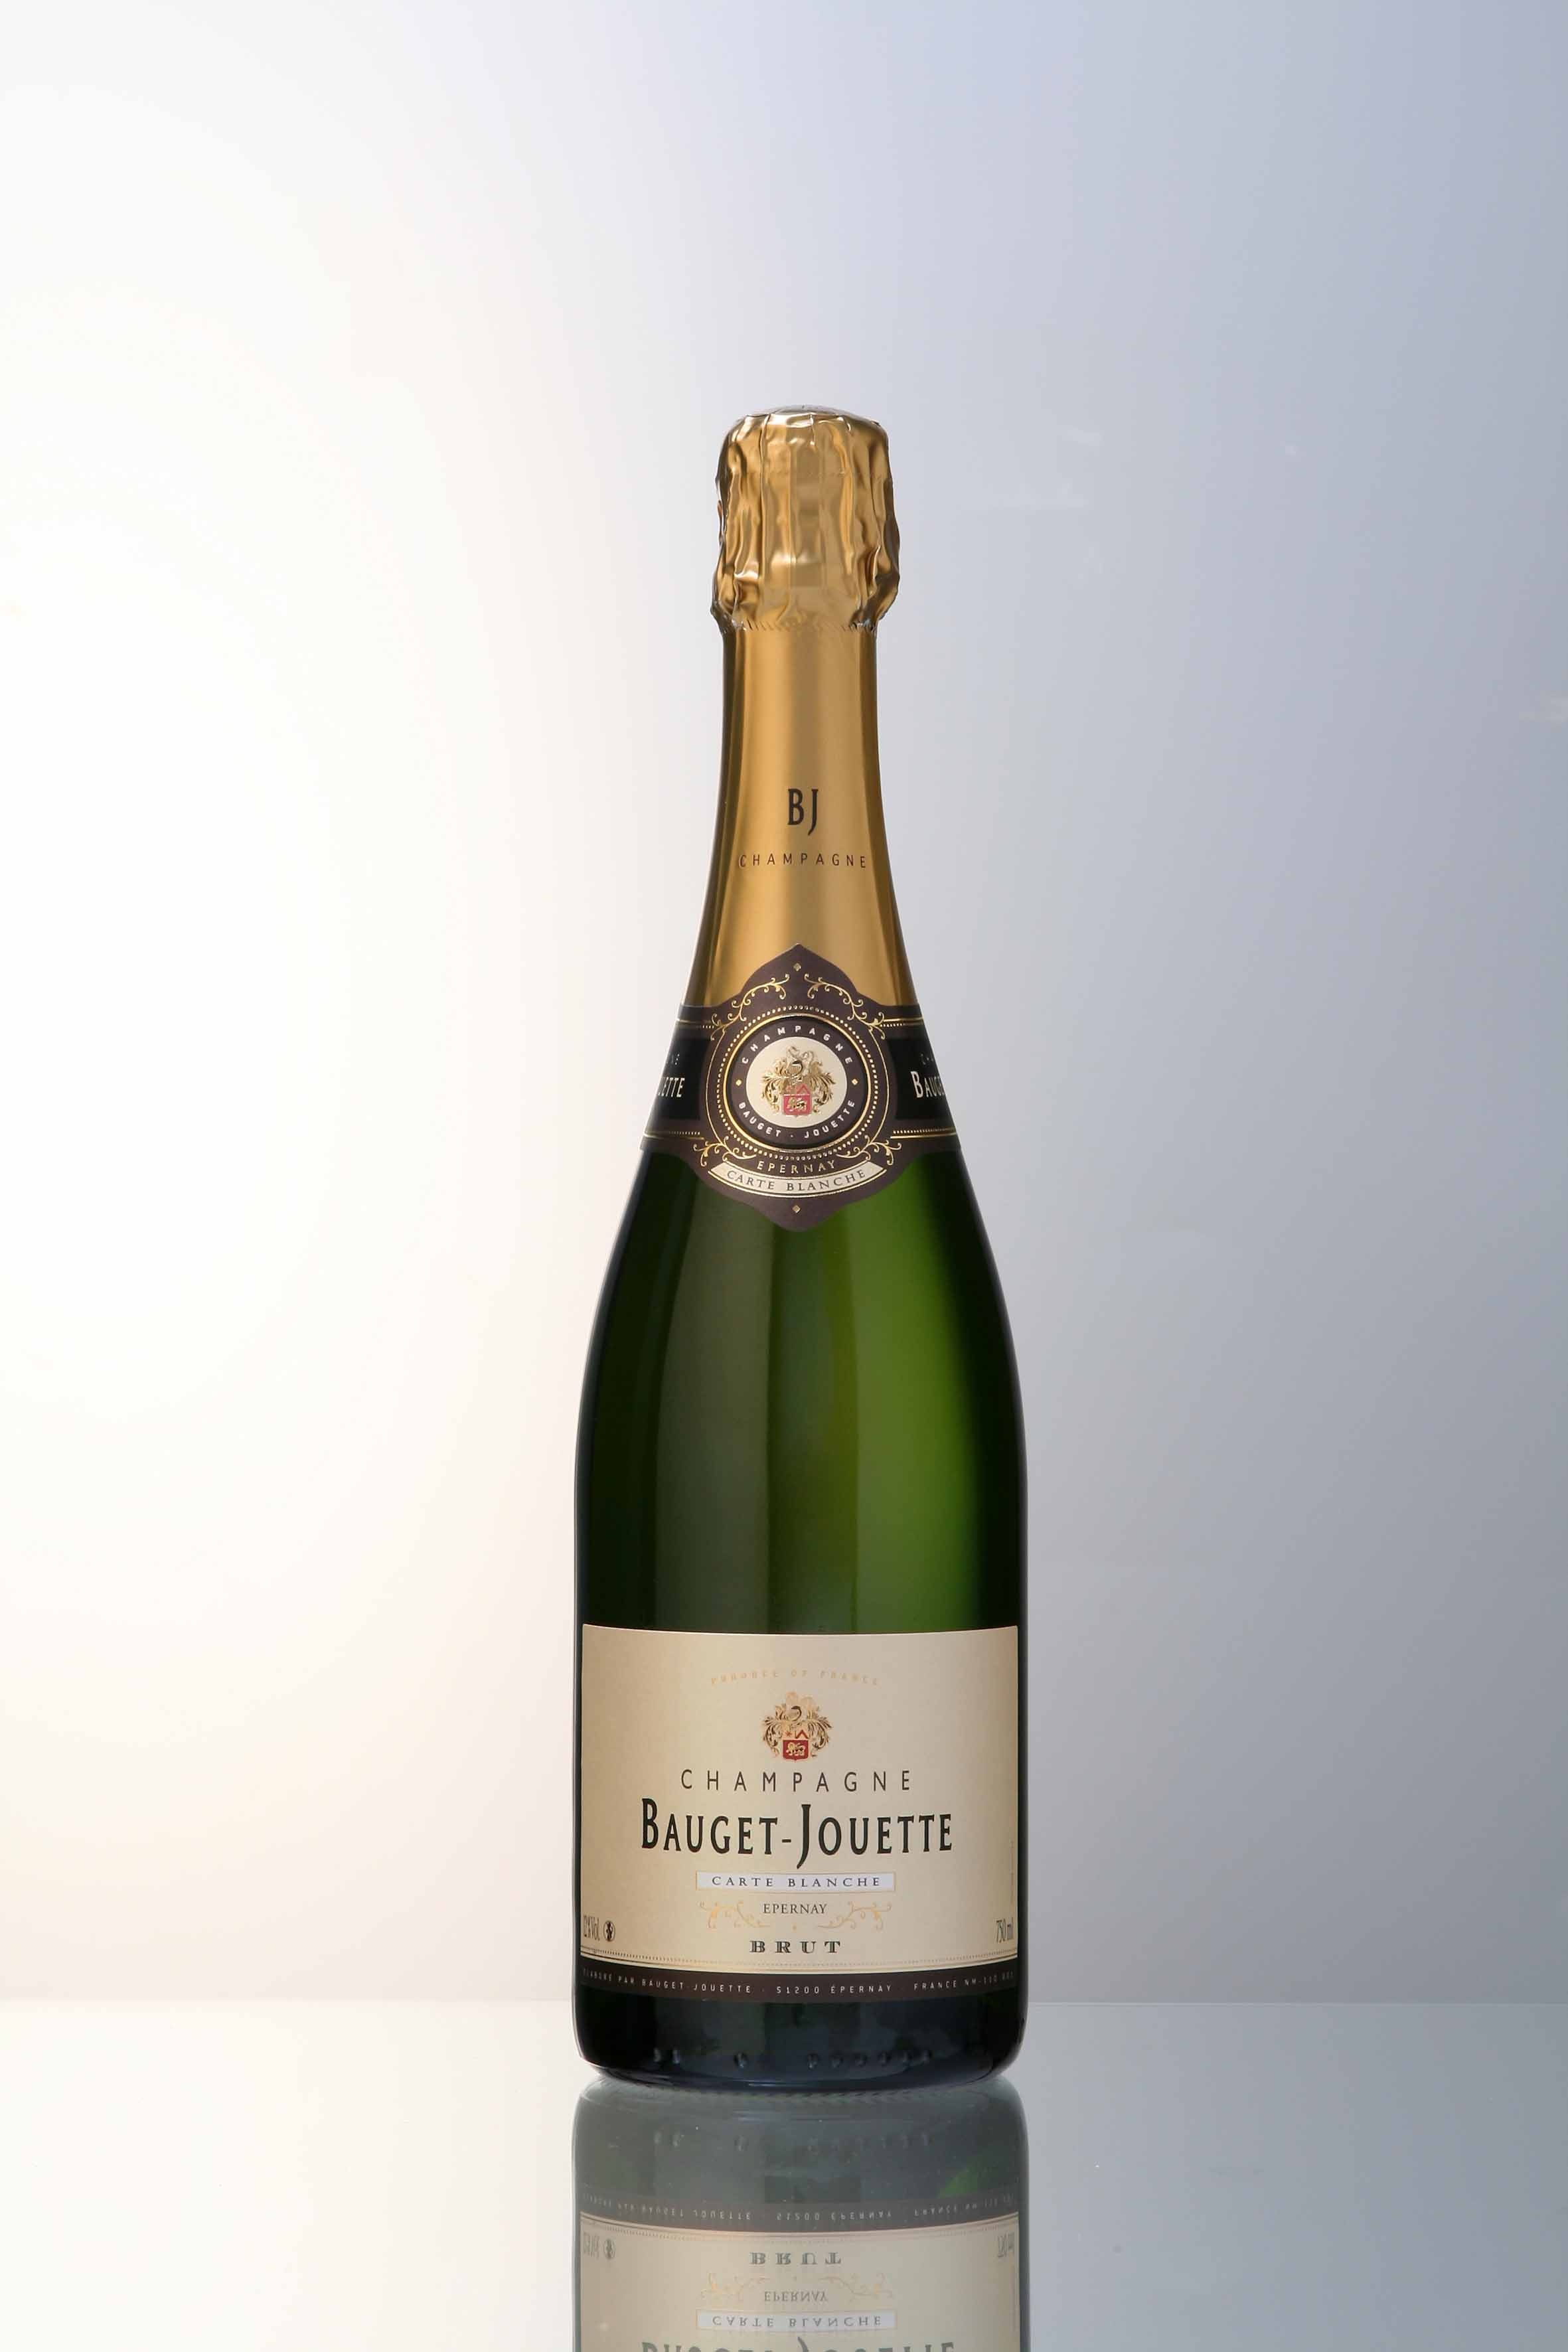 Champagne Bauget-Jouette  'Carte Blanche' Brut NV